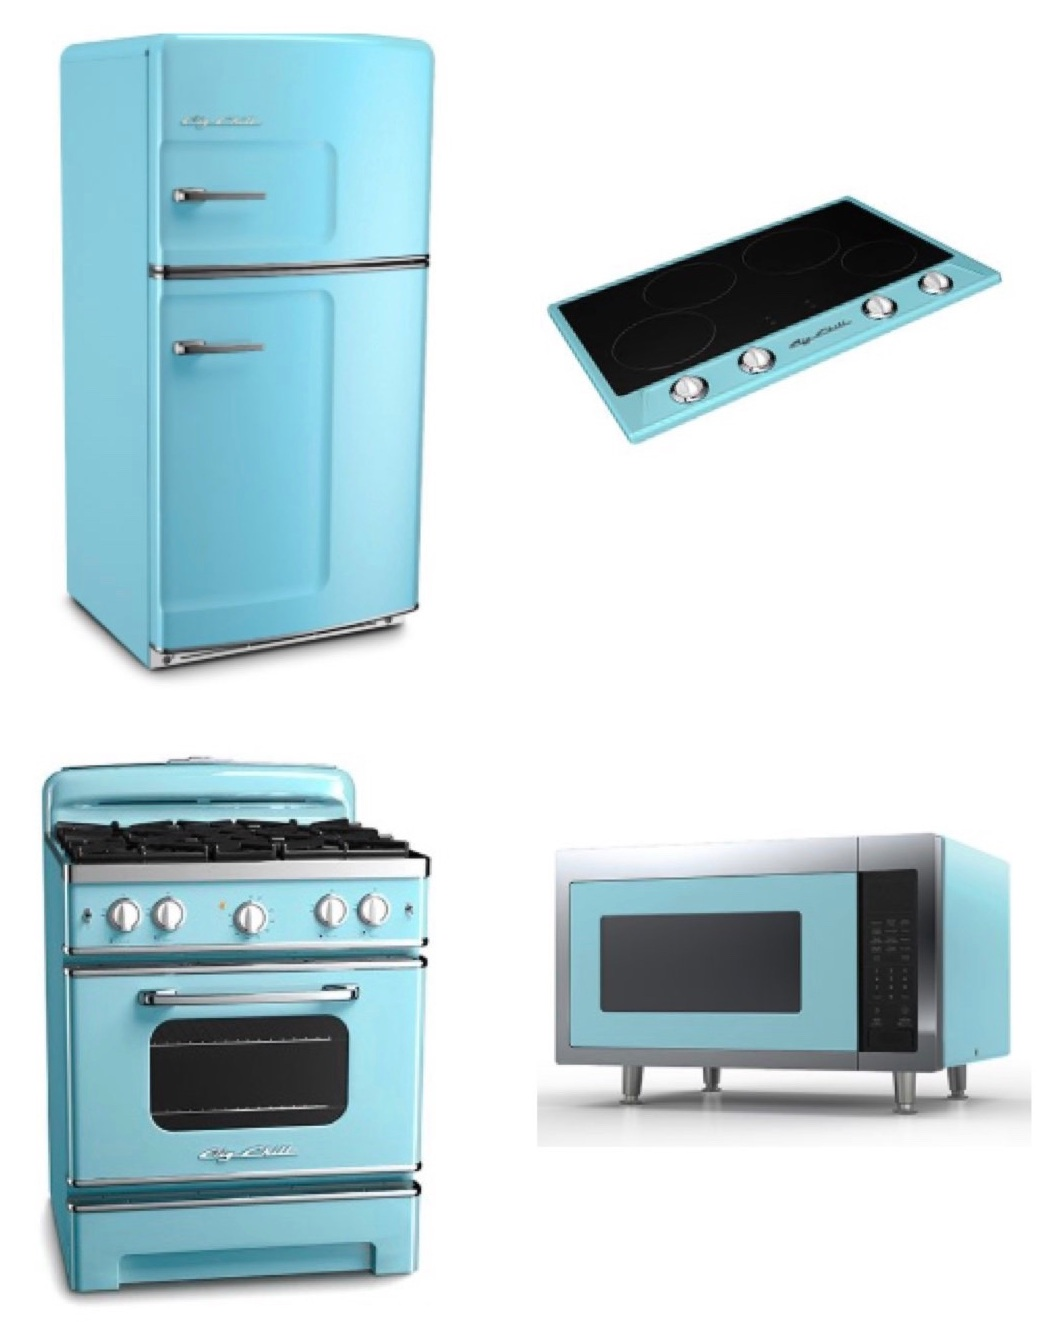 big chill's retro collection  is the dream for a retro fans - including a fridge, stove. range hood, microwave, and drop-in stovetop.